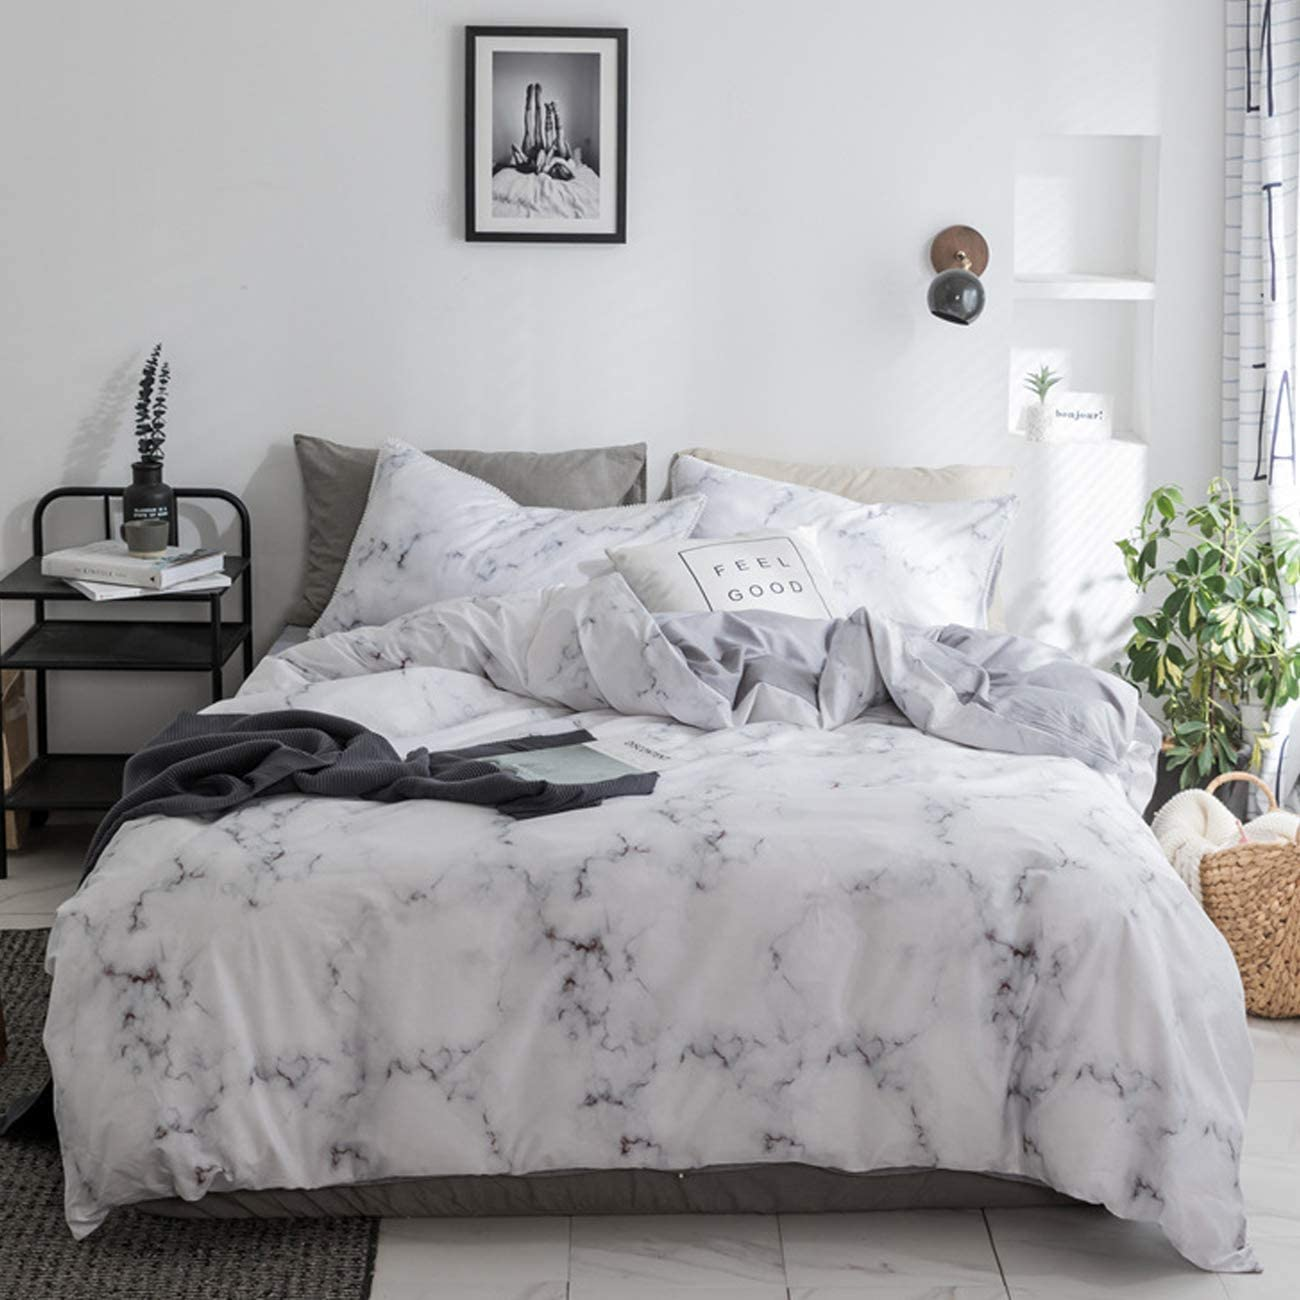 PromQueen Bedding Set Soft Cotton Quilt Cover Set White Marble Pattern Comforter Cover and Pillow Shams Machine Washable Hypoallergenic Twin